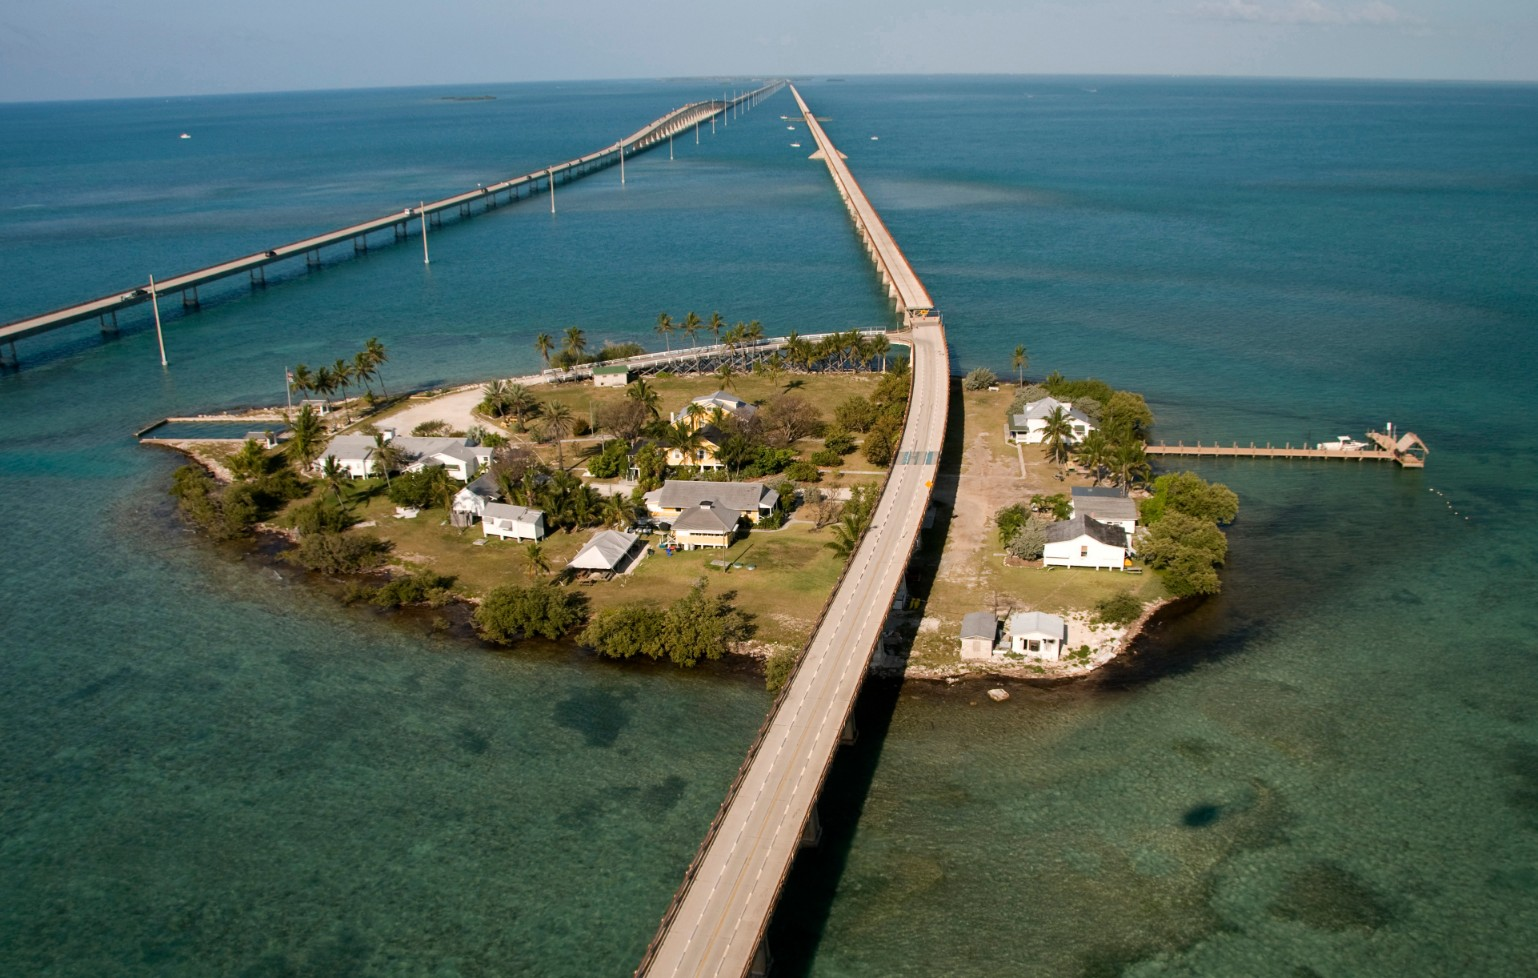 Overseas Highway 7 (at Pigeon Key, Marathon) Credit Andy Newman